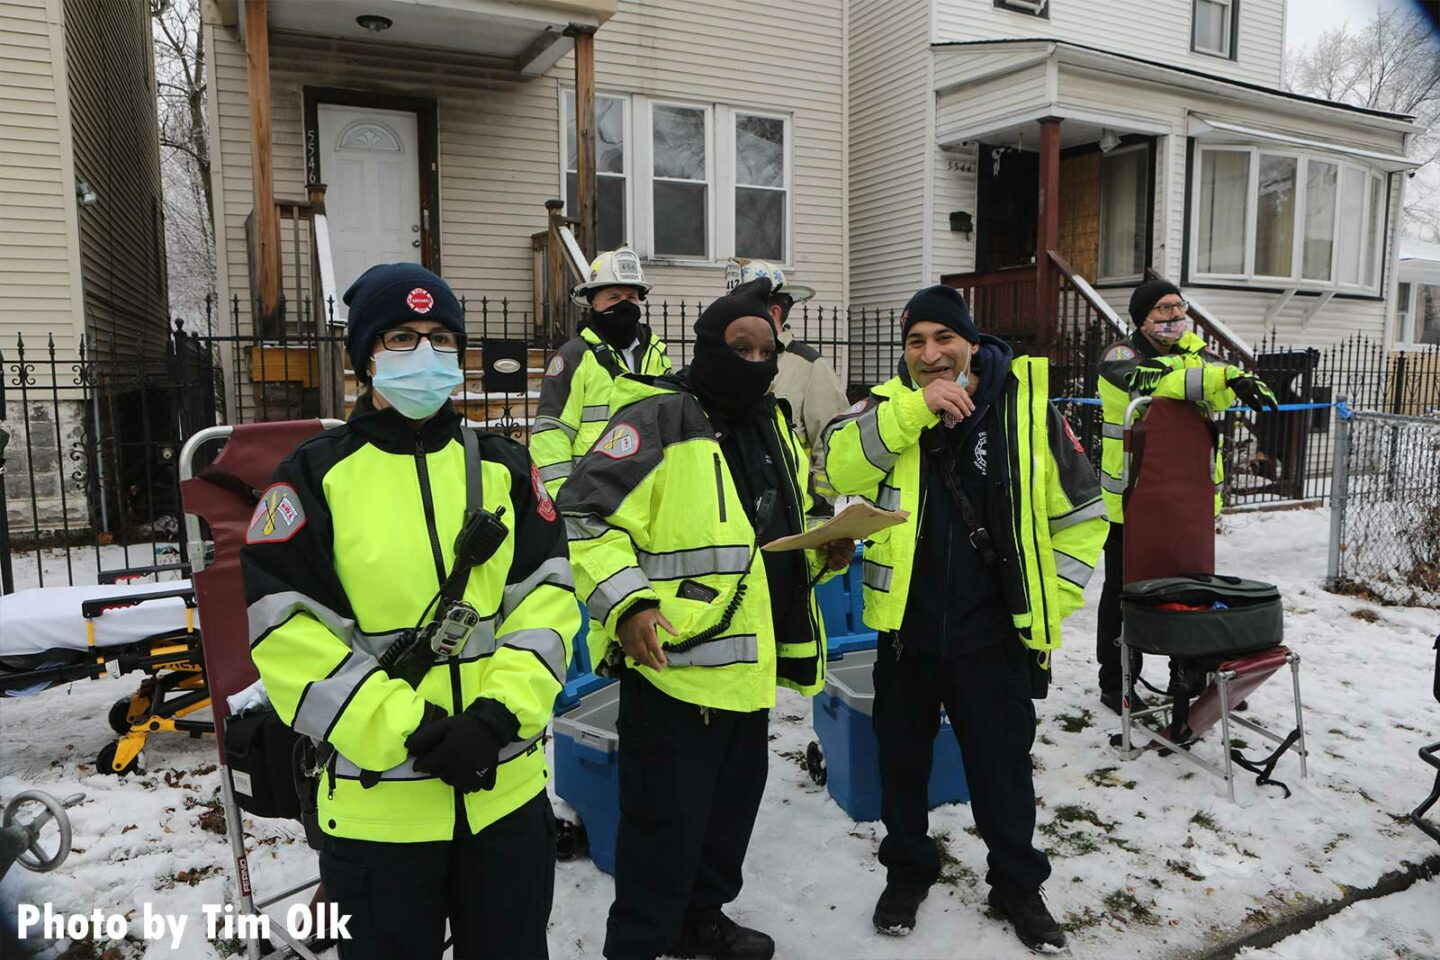 EMS members on scene of the Chicago fire